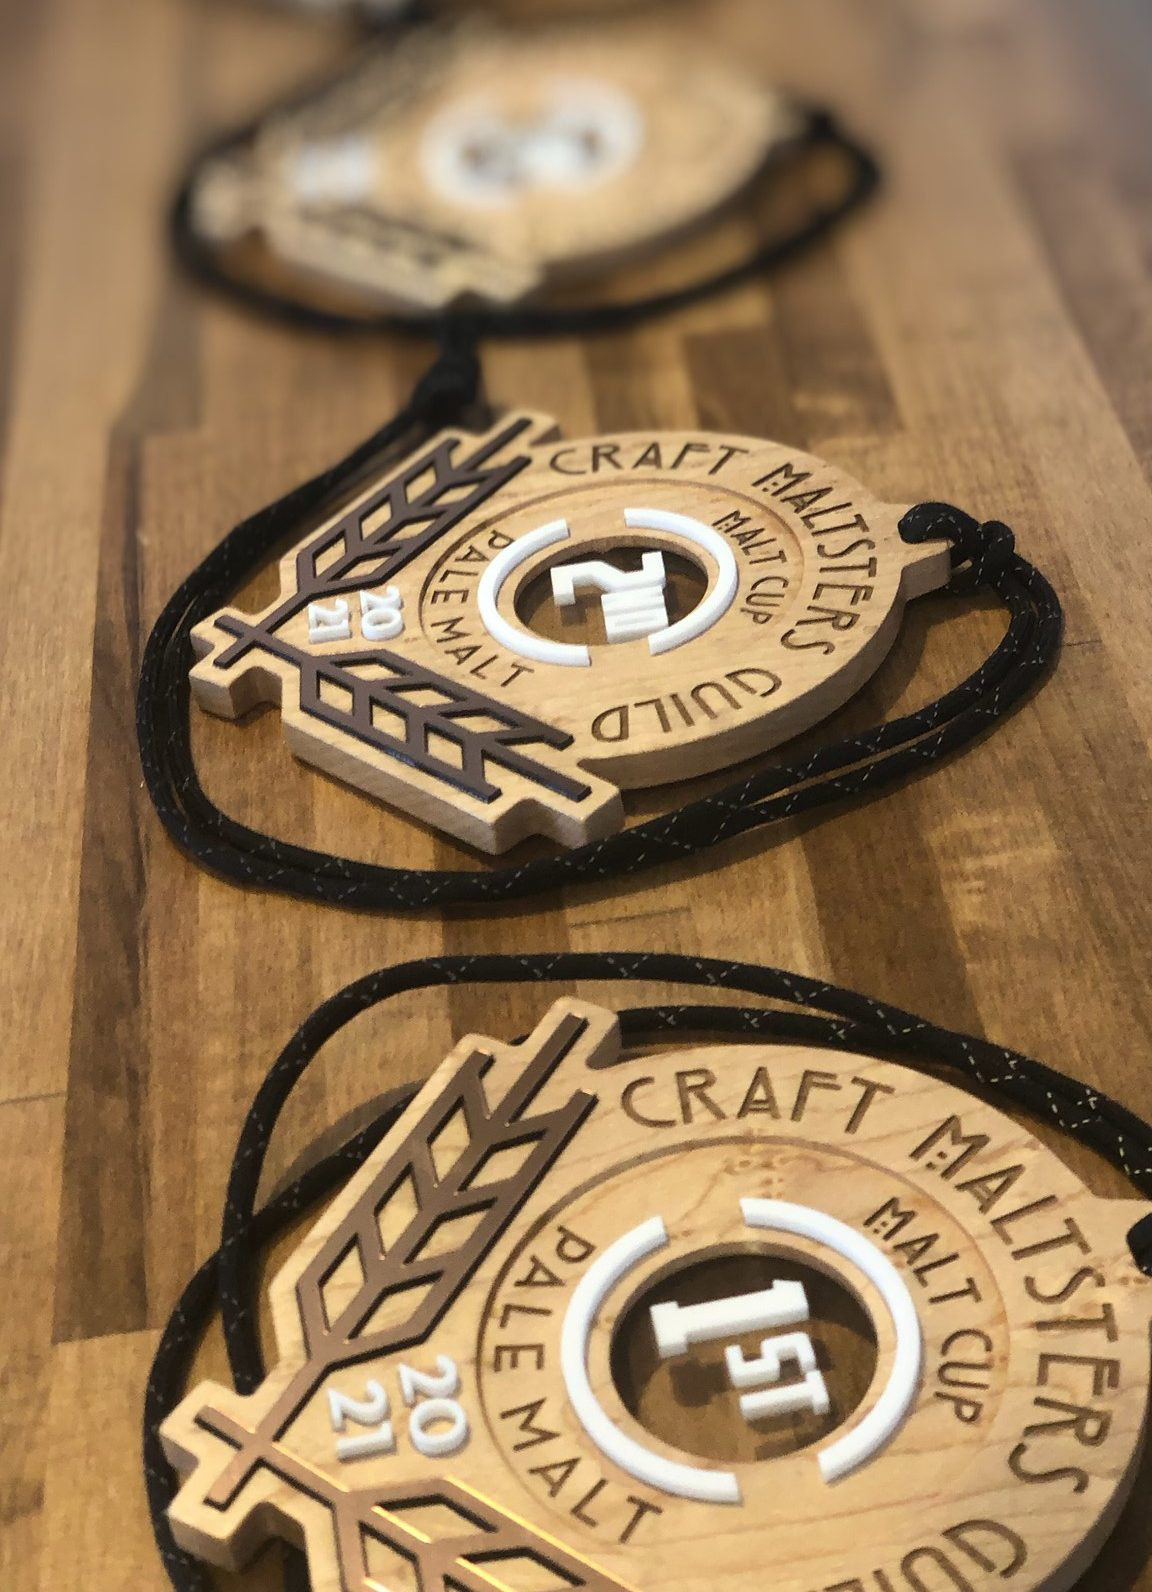 image of the 2021 Malt Cup Awards courtesy of the Craft Maltsters Guild